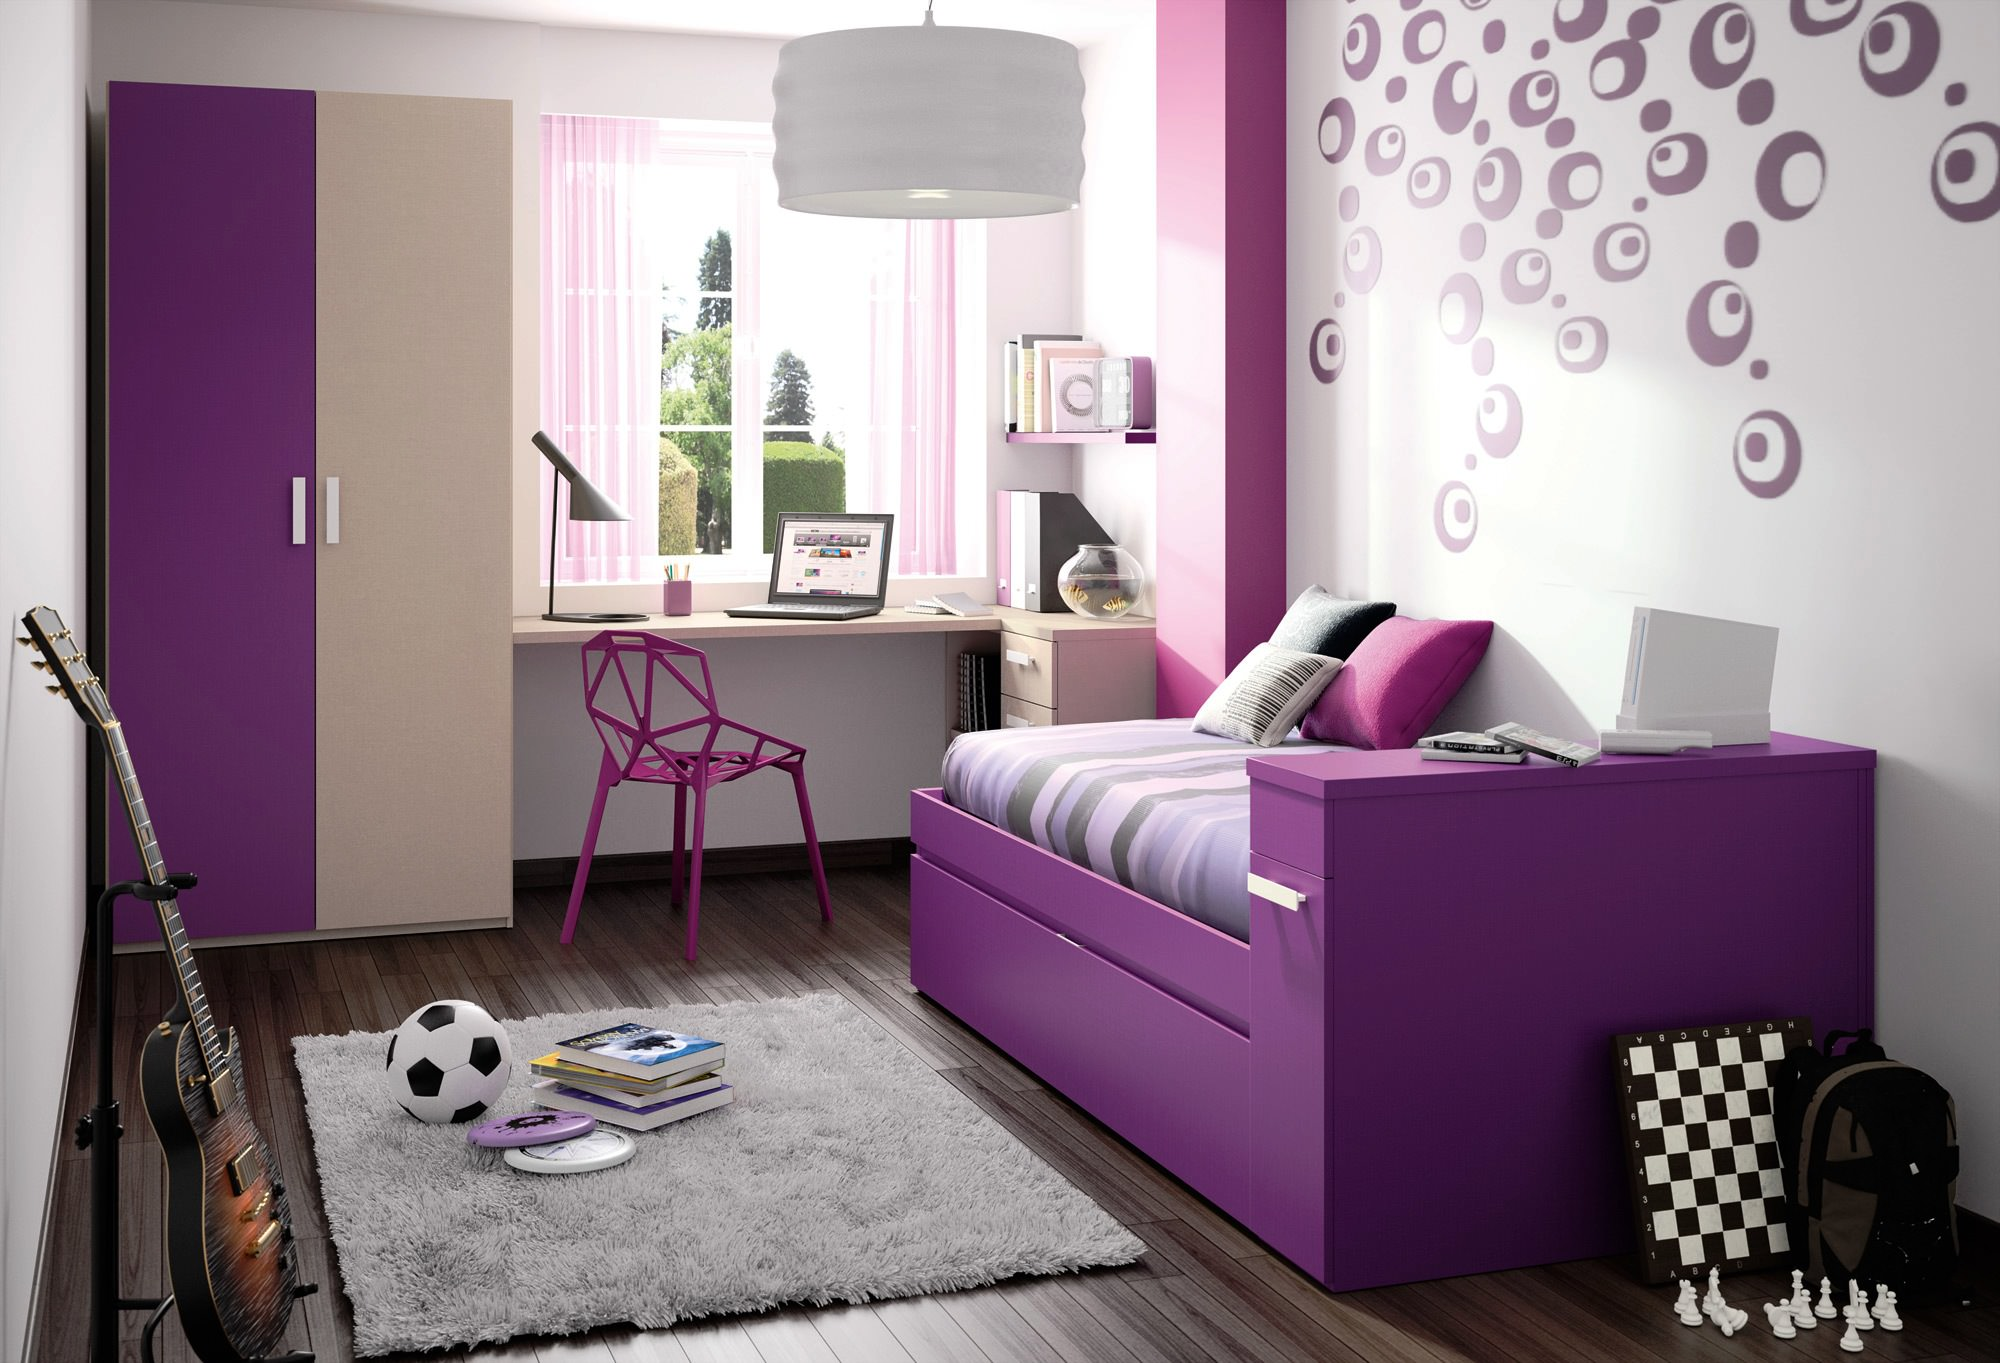 14+ Wall Designs, Decor Ideas For Teenage Bedrooms ... on Teenage Bedroom Ideas  id=48967